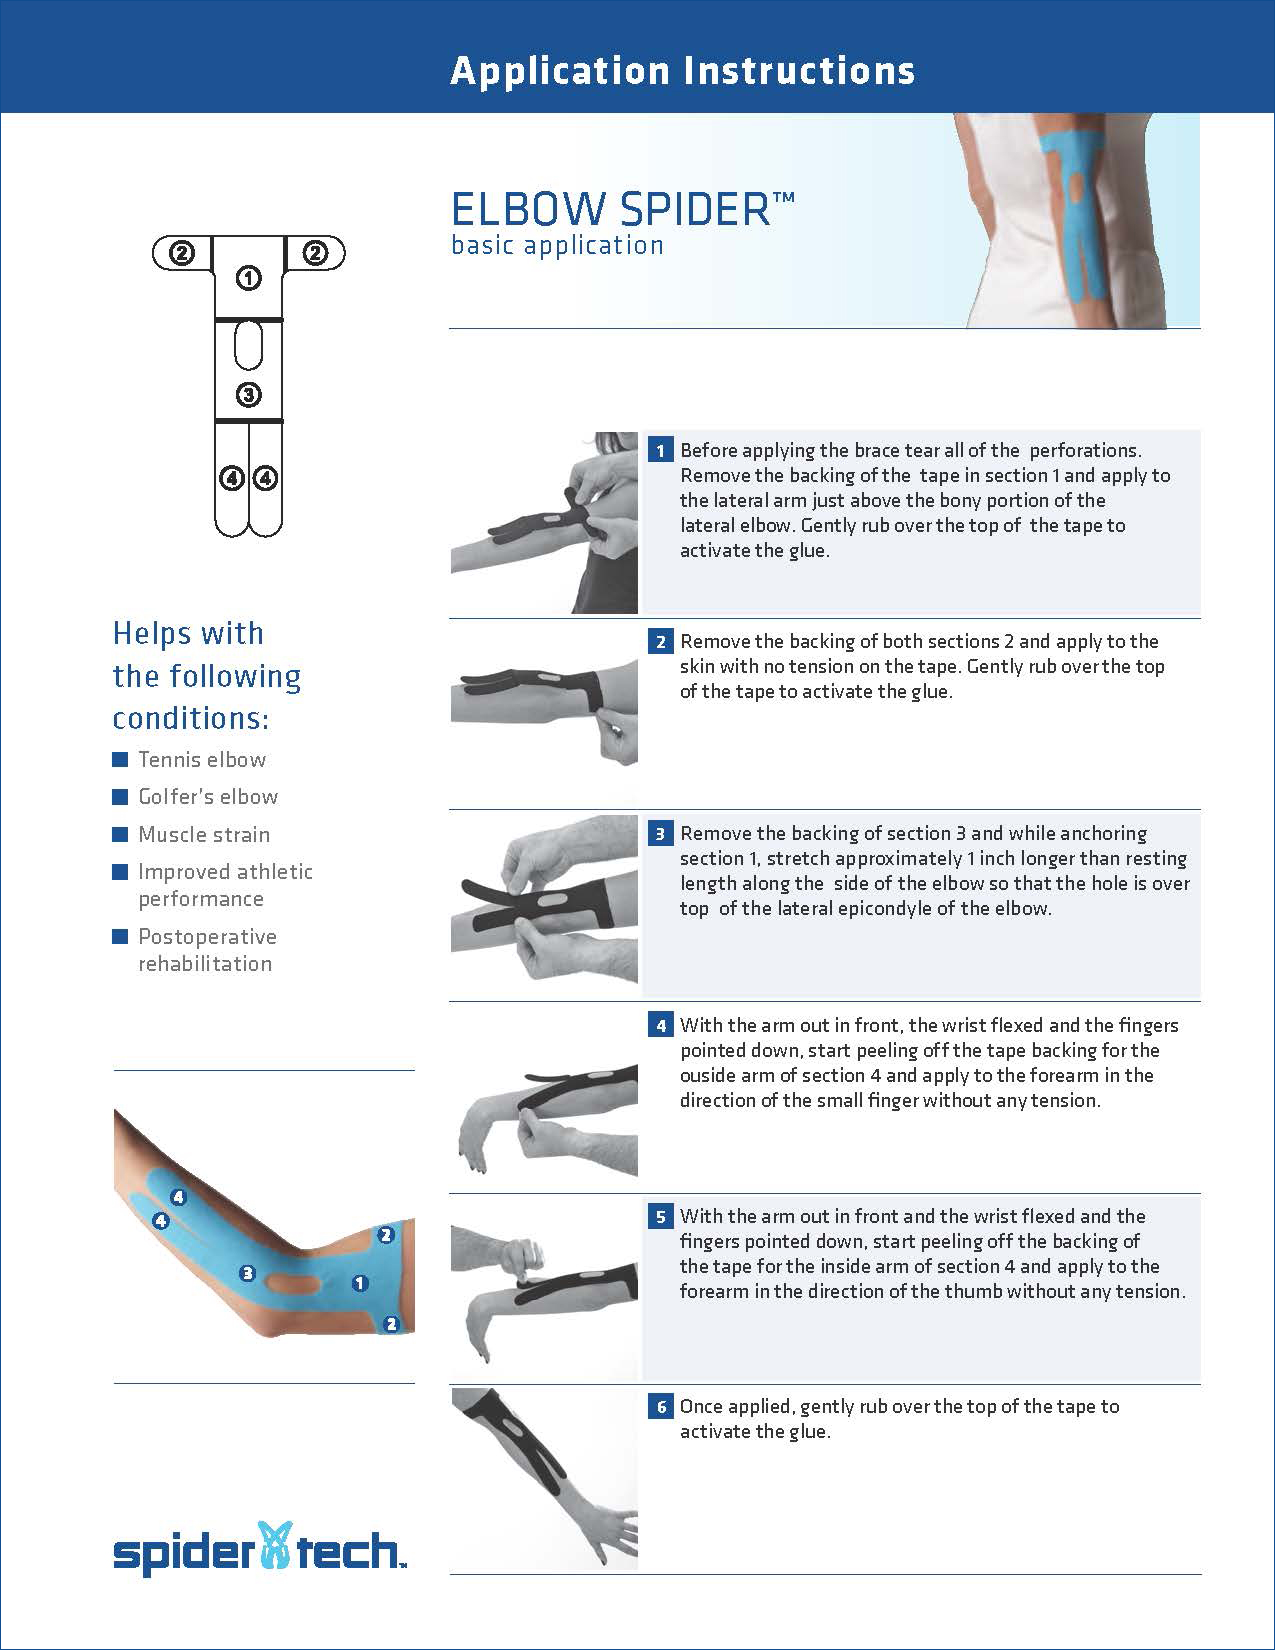 SpiderTech-Elbow-Spider-Application-Instructions